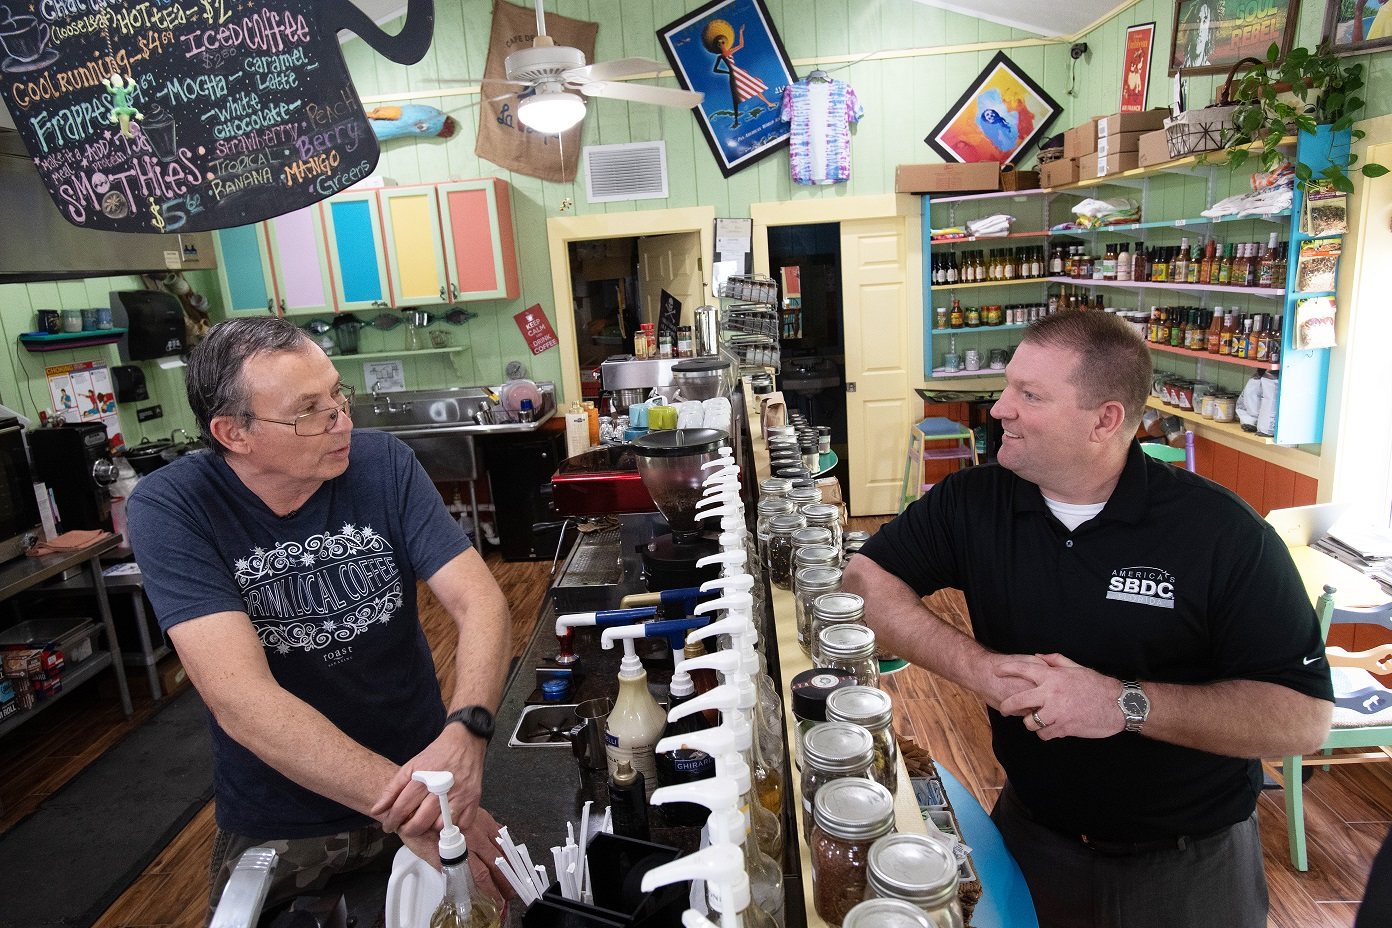 L-R: David Kiser, owner of Caribbean Coffee, shares with Michael Myhre, CEO of the Florida SBDC Network, how he storm impacted his cafe and about the progress he's made since the storm rolled ashore